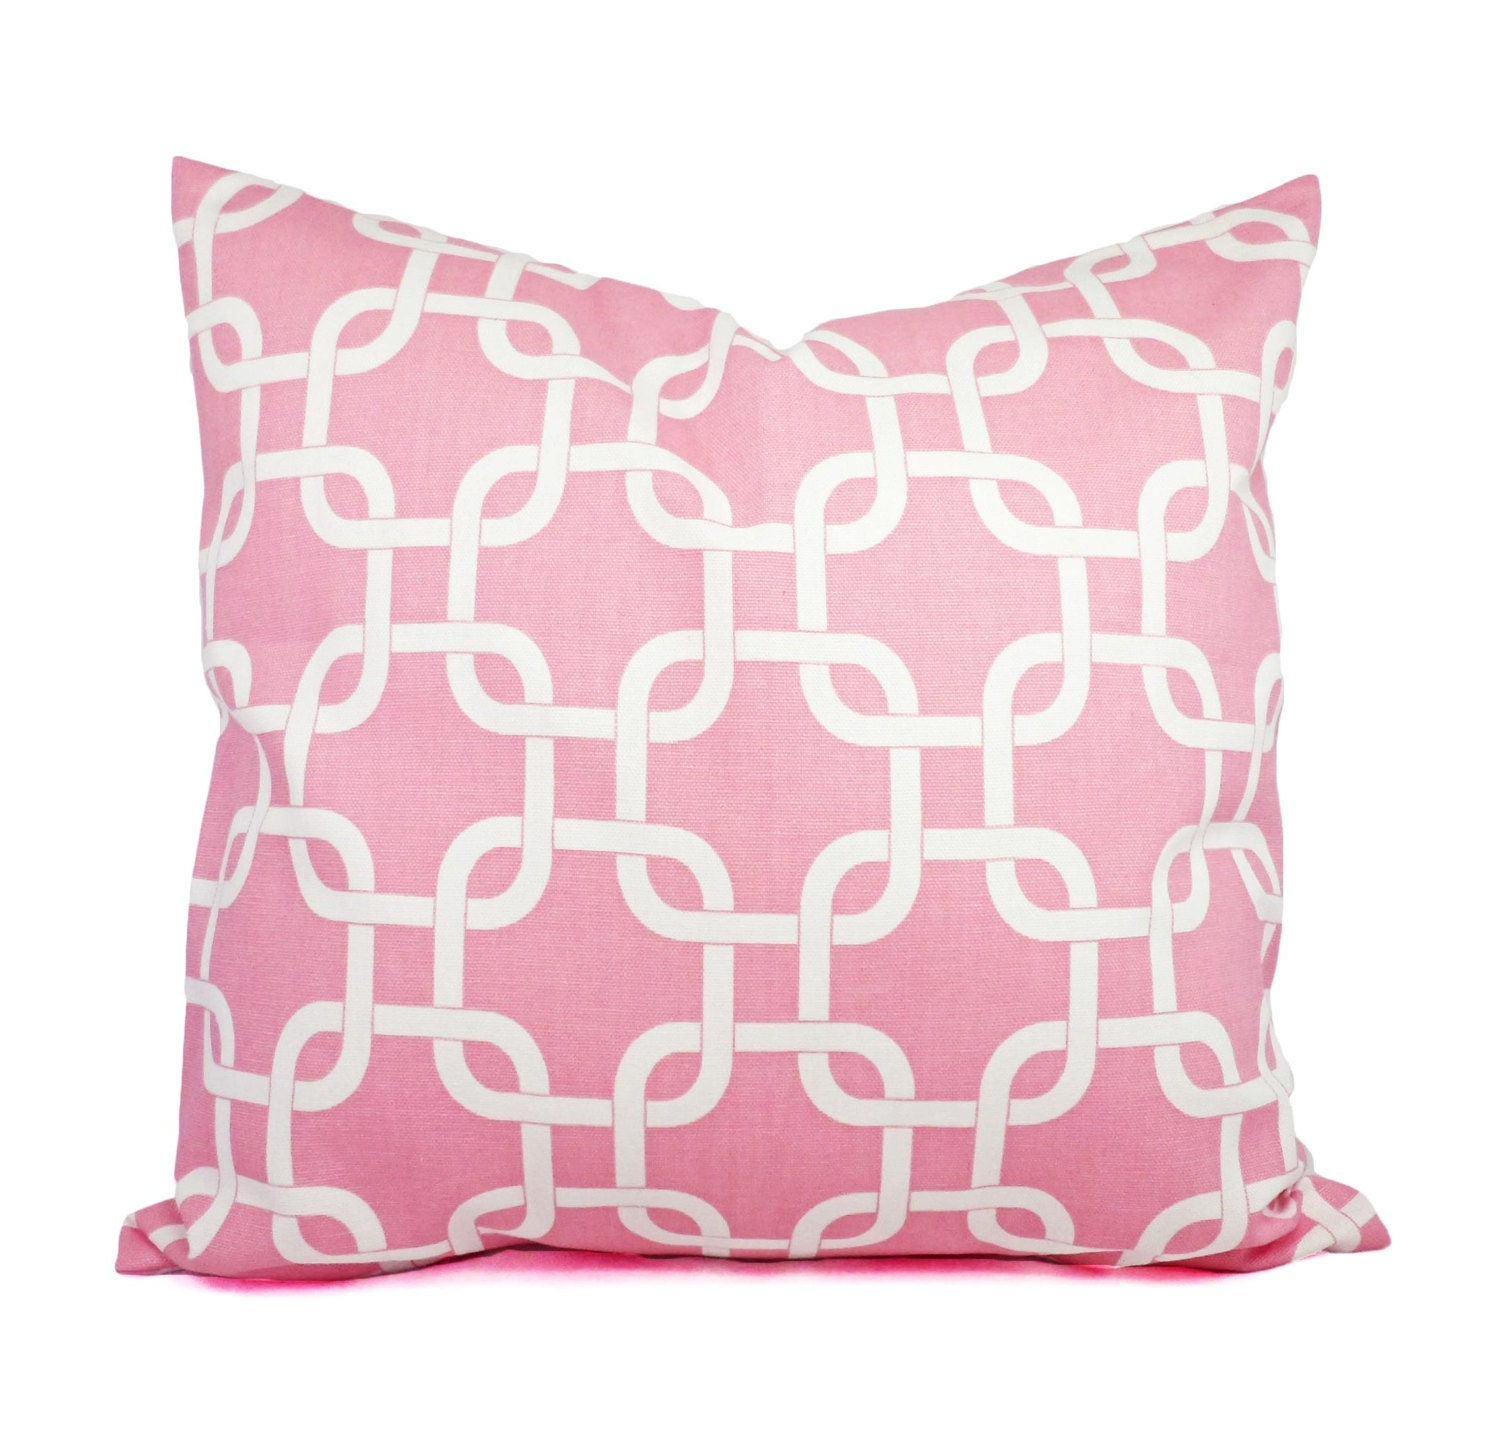 Two Blush Pink Pillows Soft Pink and White Throw Pillows